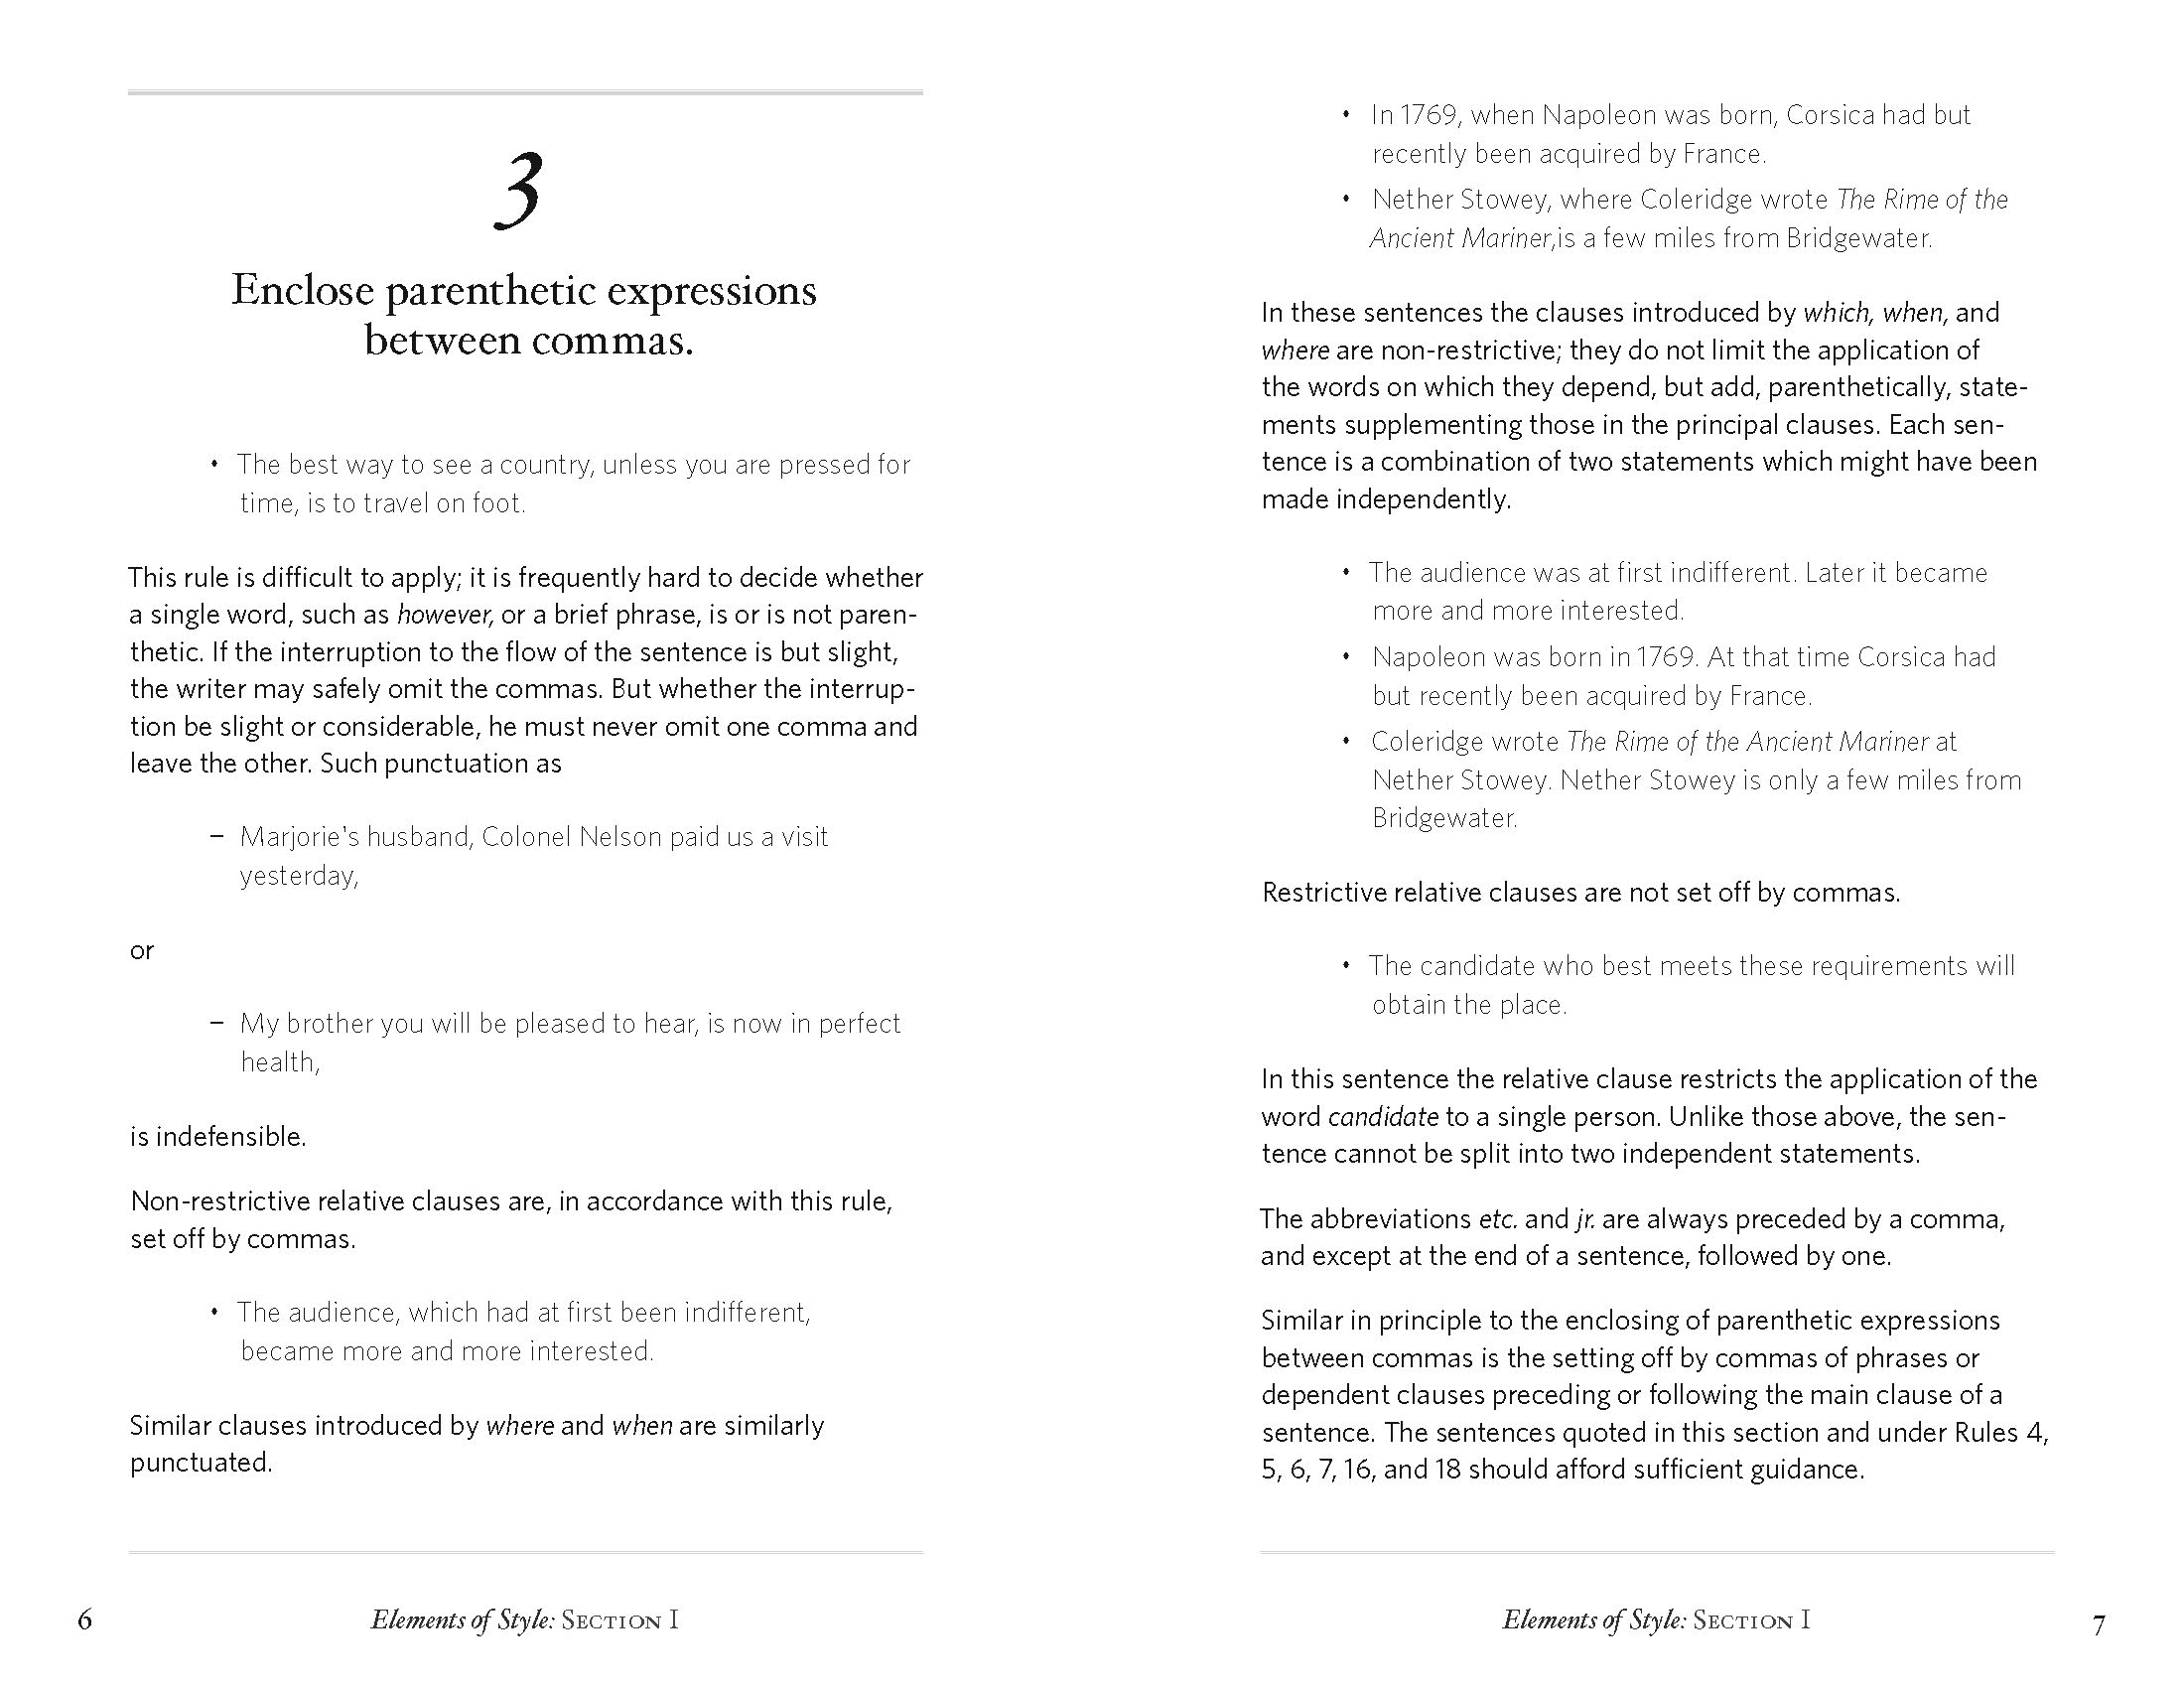 elements_of_style_section_1_v5_Page_05.jpg